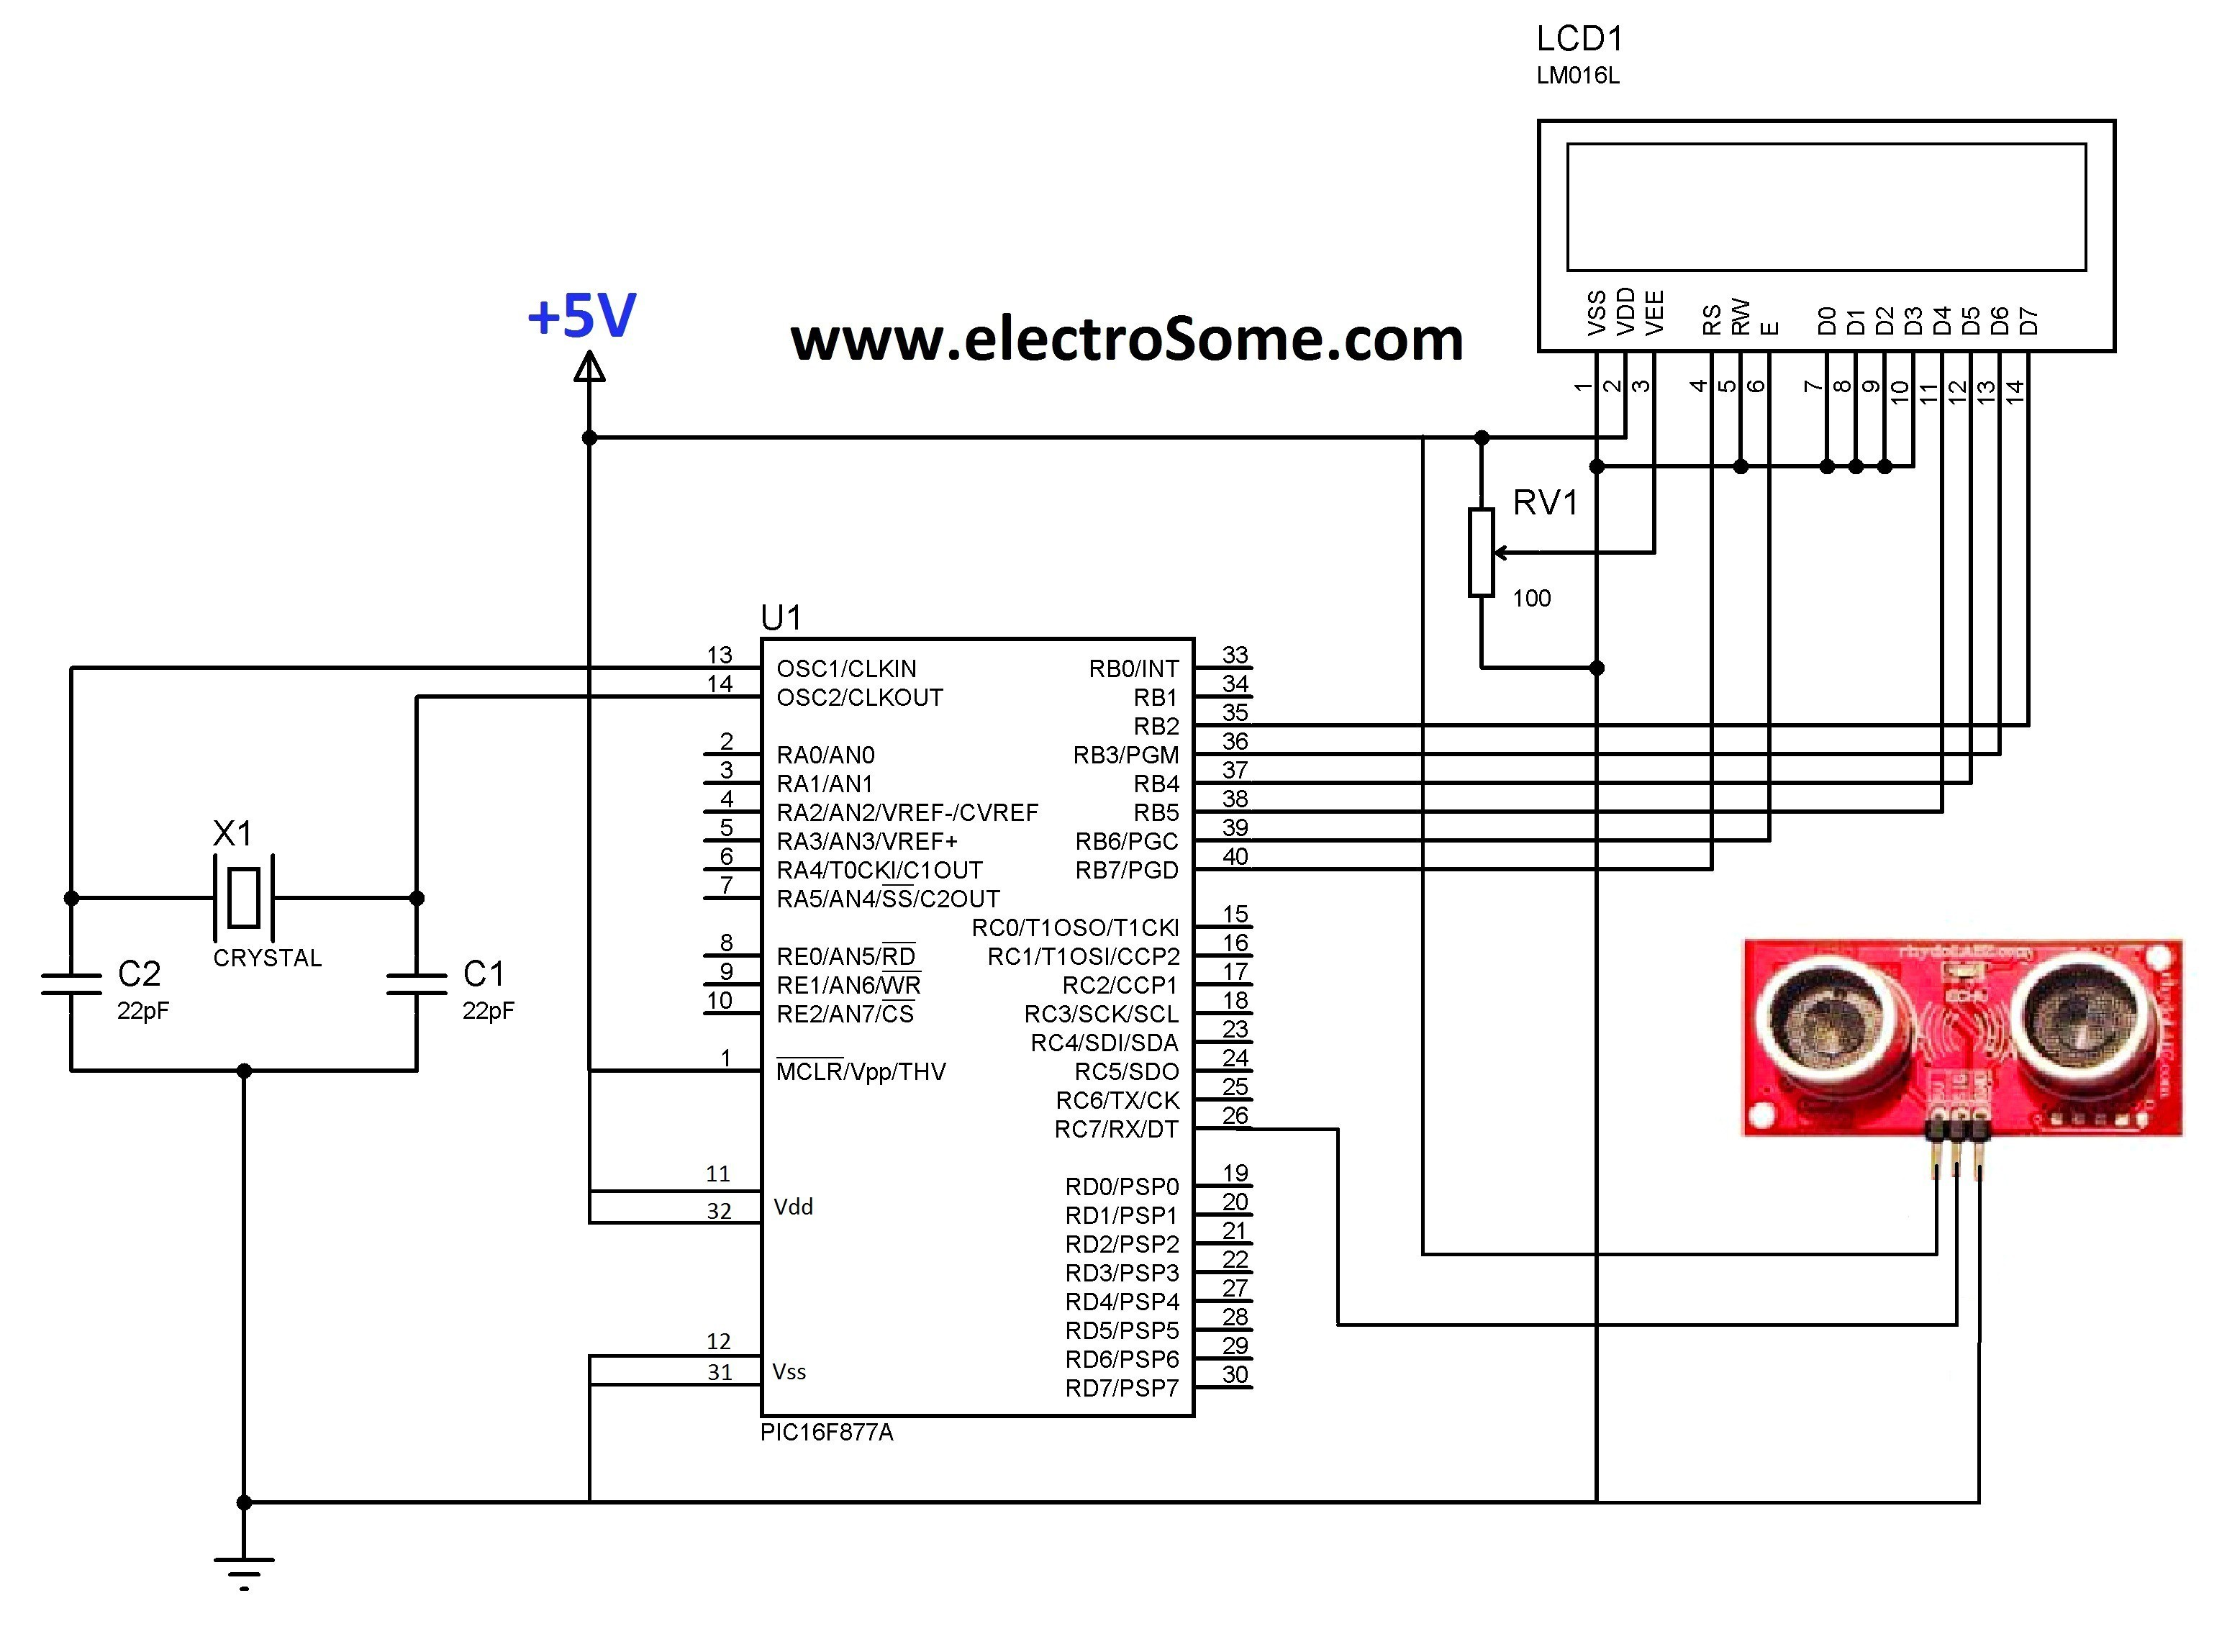 Wiring Photocell to Lighting Contactor F62dca3 tork Lighting Contactor Wiring Diagram Of Wiring Photocell to Lighting Contactor Eaton atc 800 Wiring Diagram Contactor Wiring Diagram A1 A2